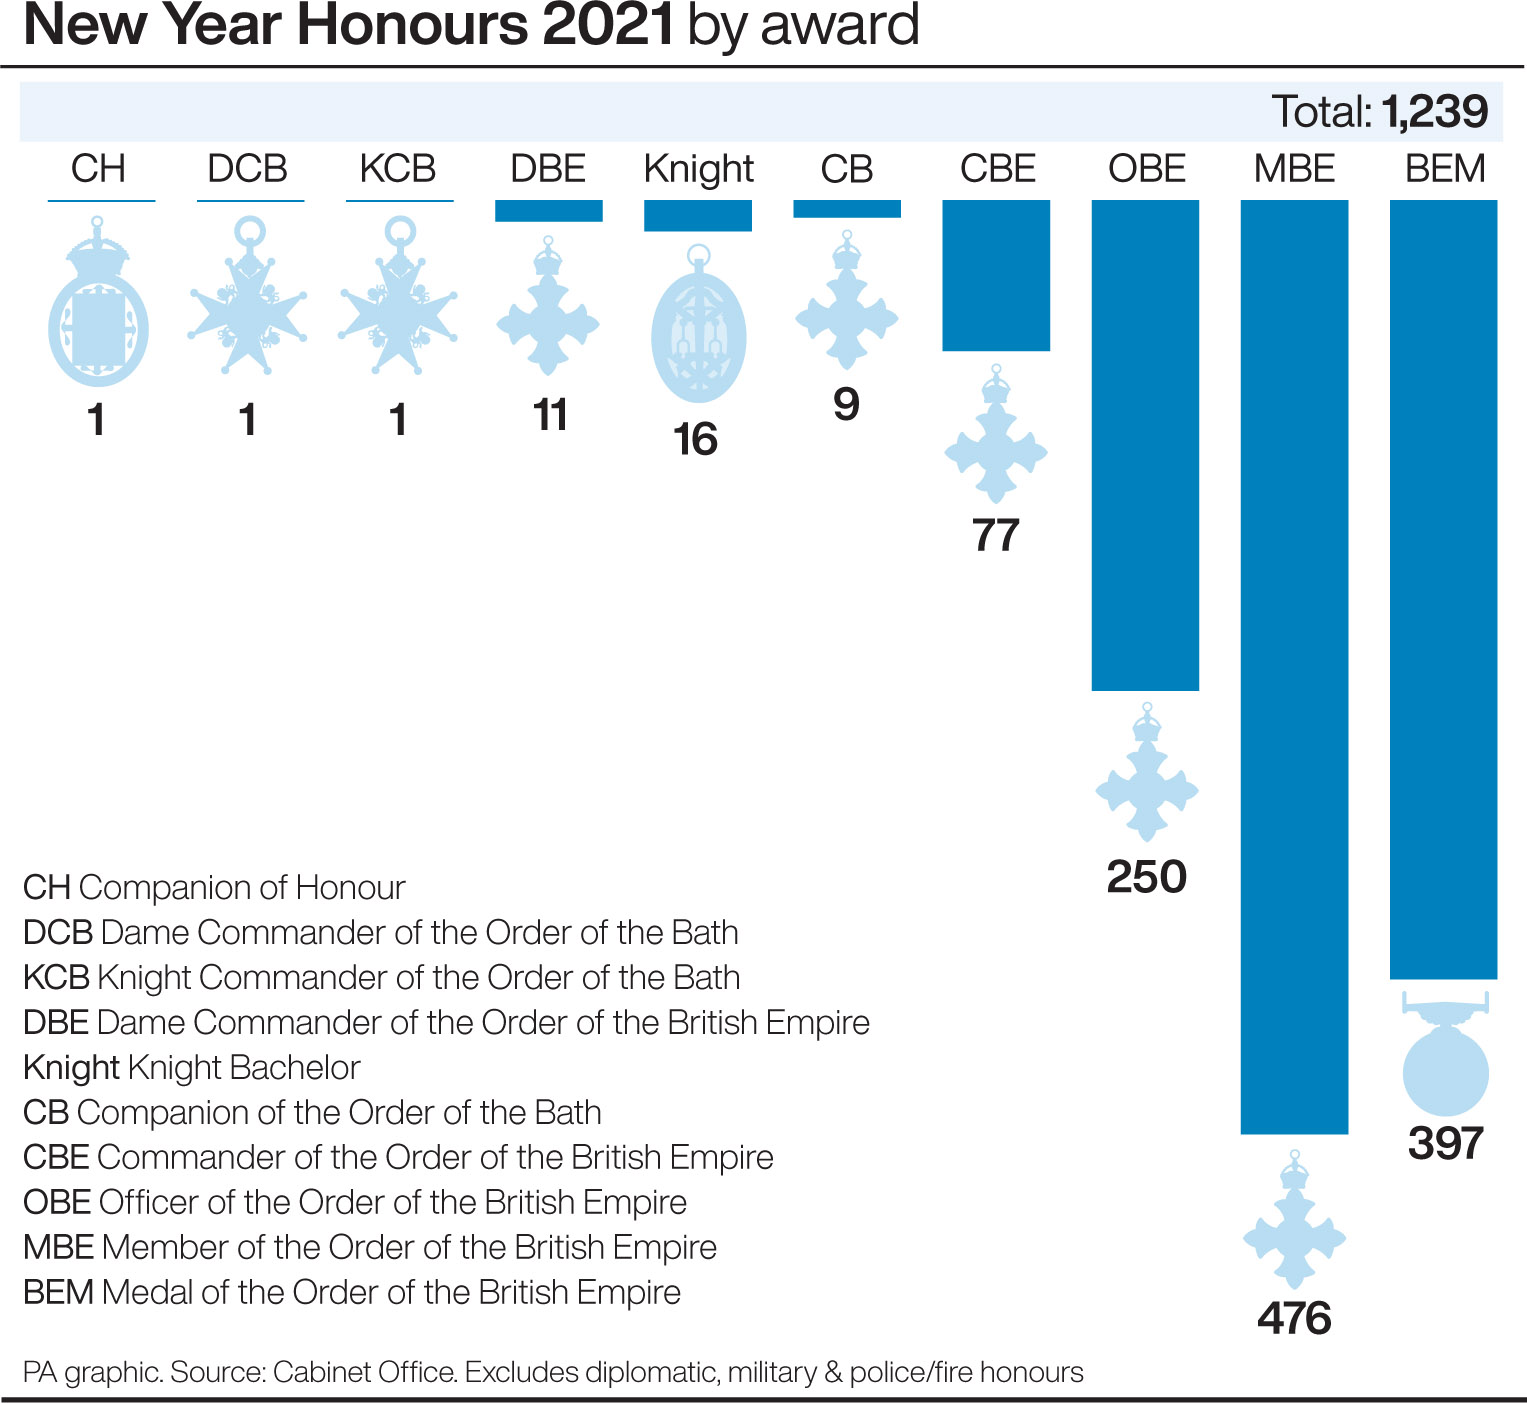 New Year Honours